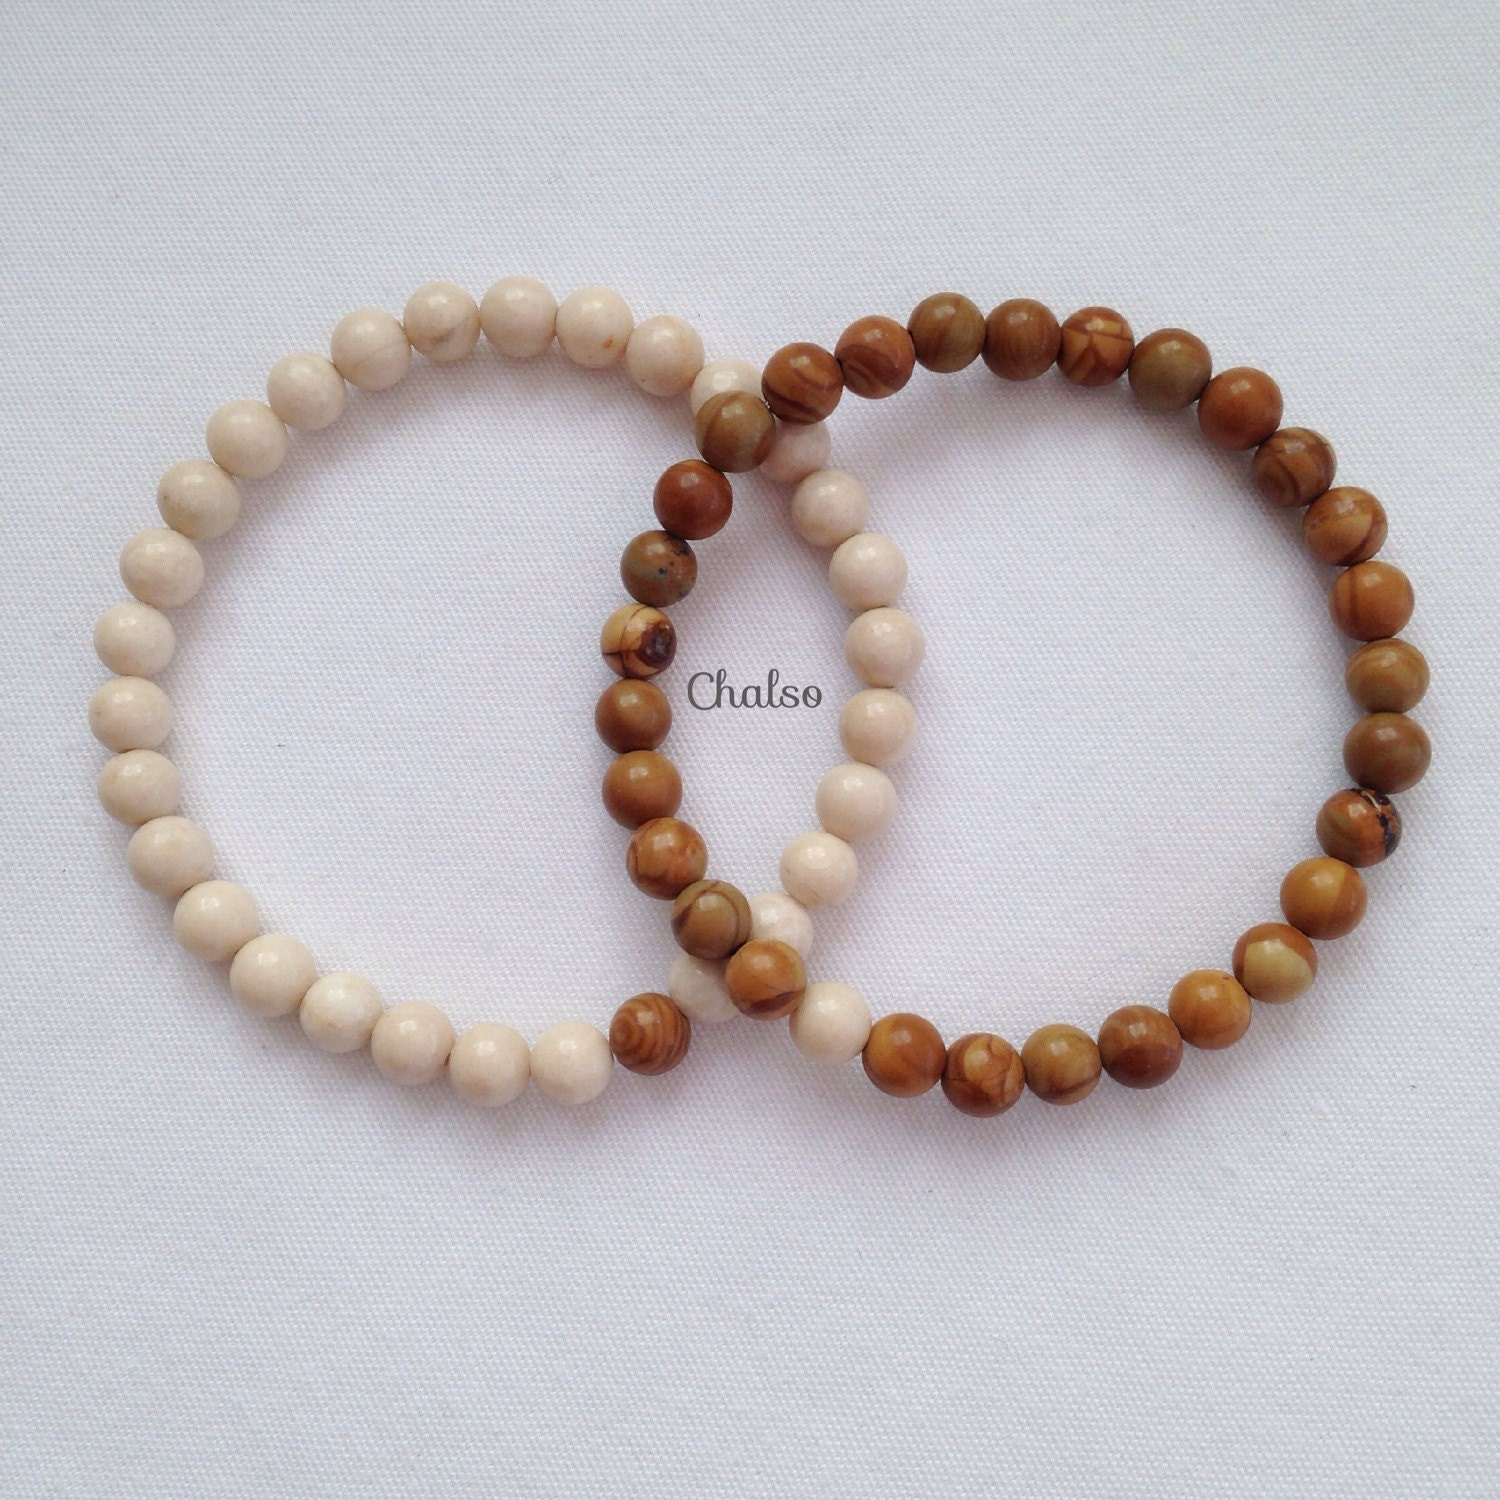 Couple bracelets Fossil Jasper and Sandalwood Jasper matching